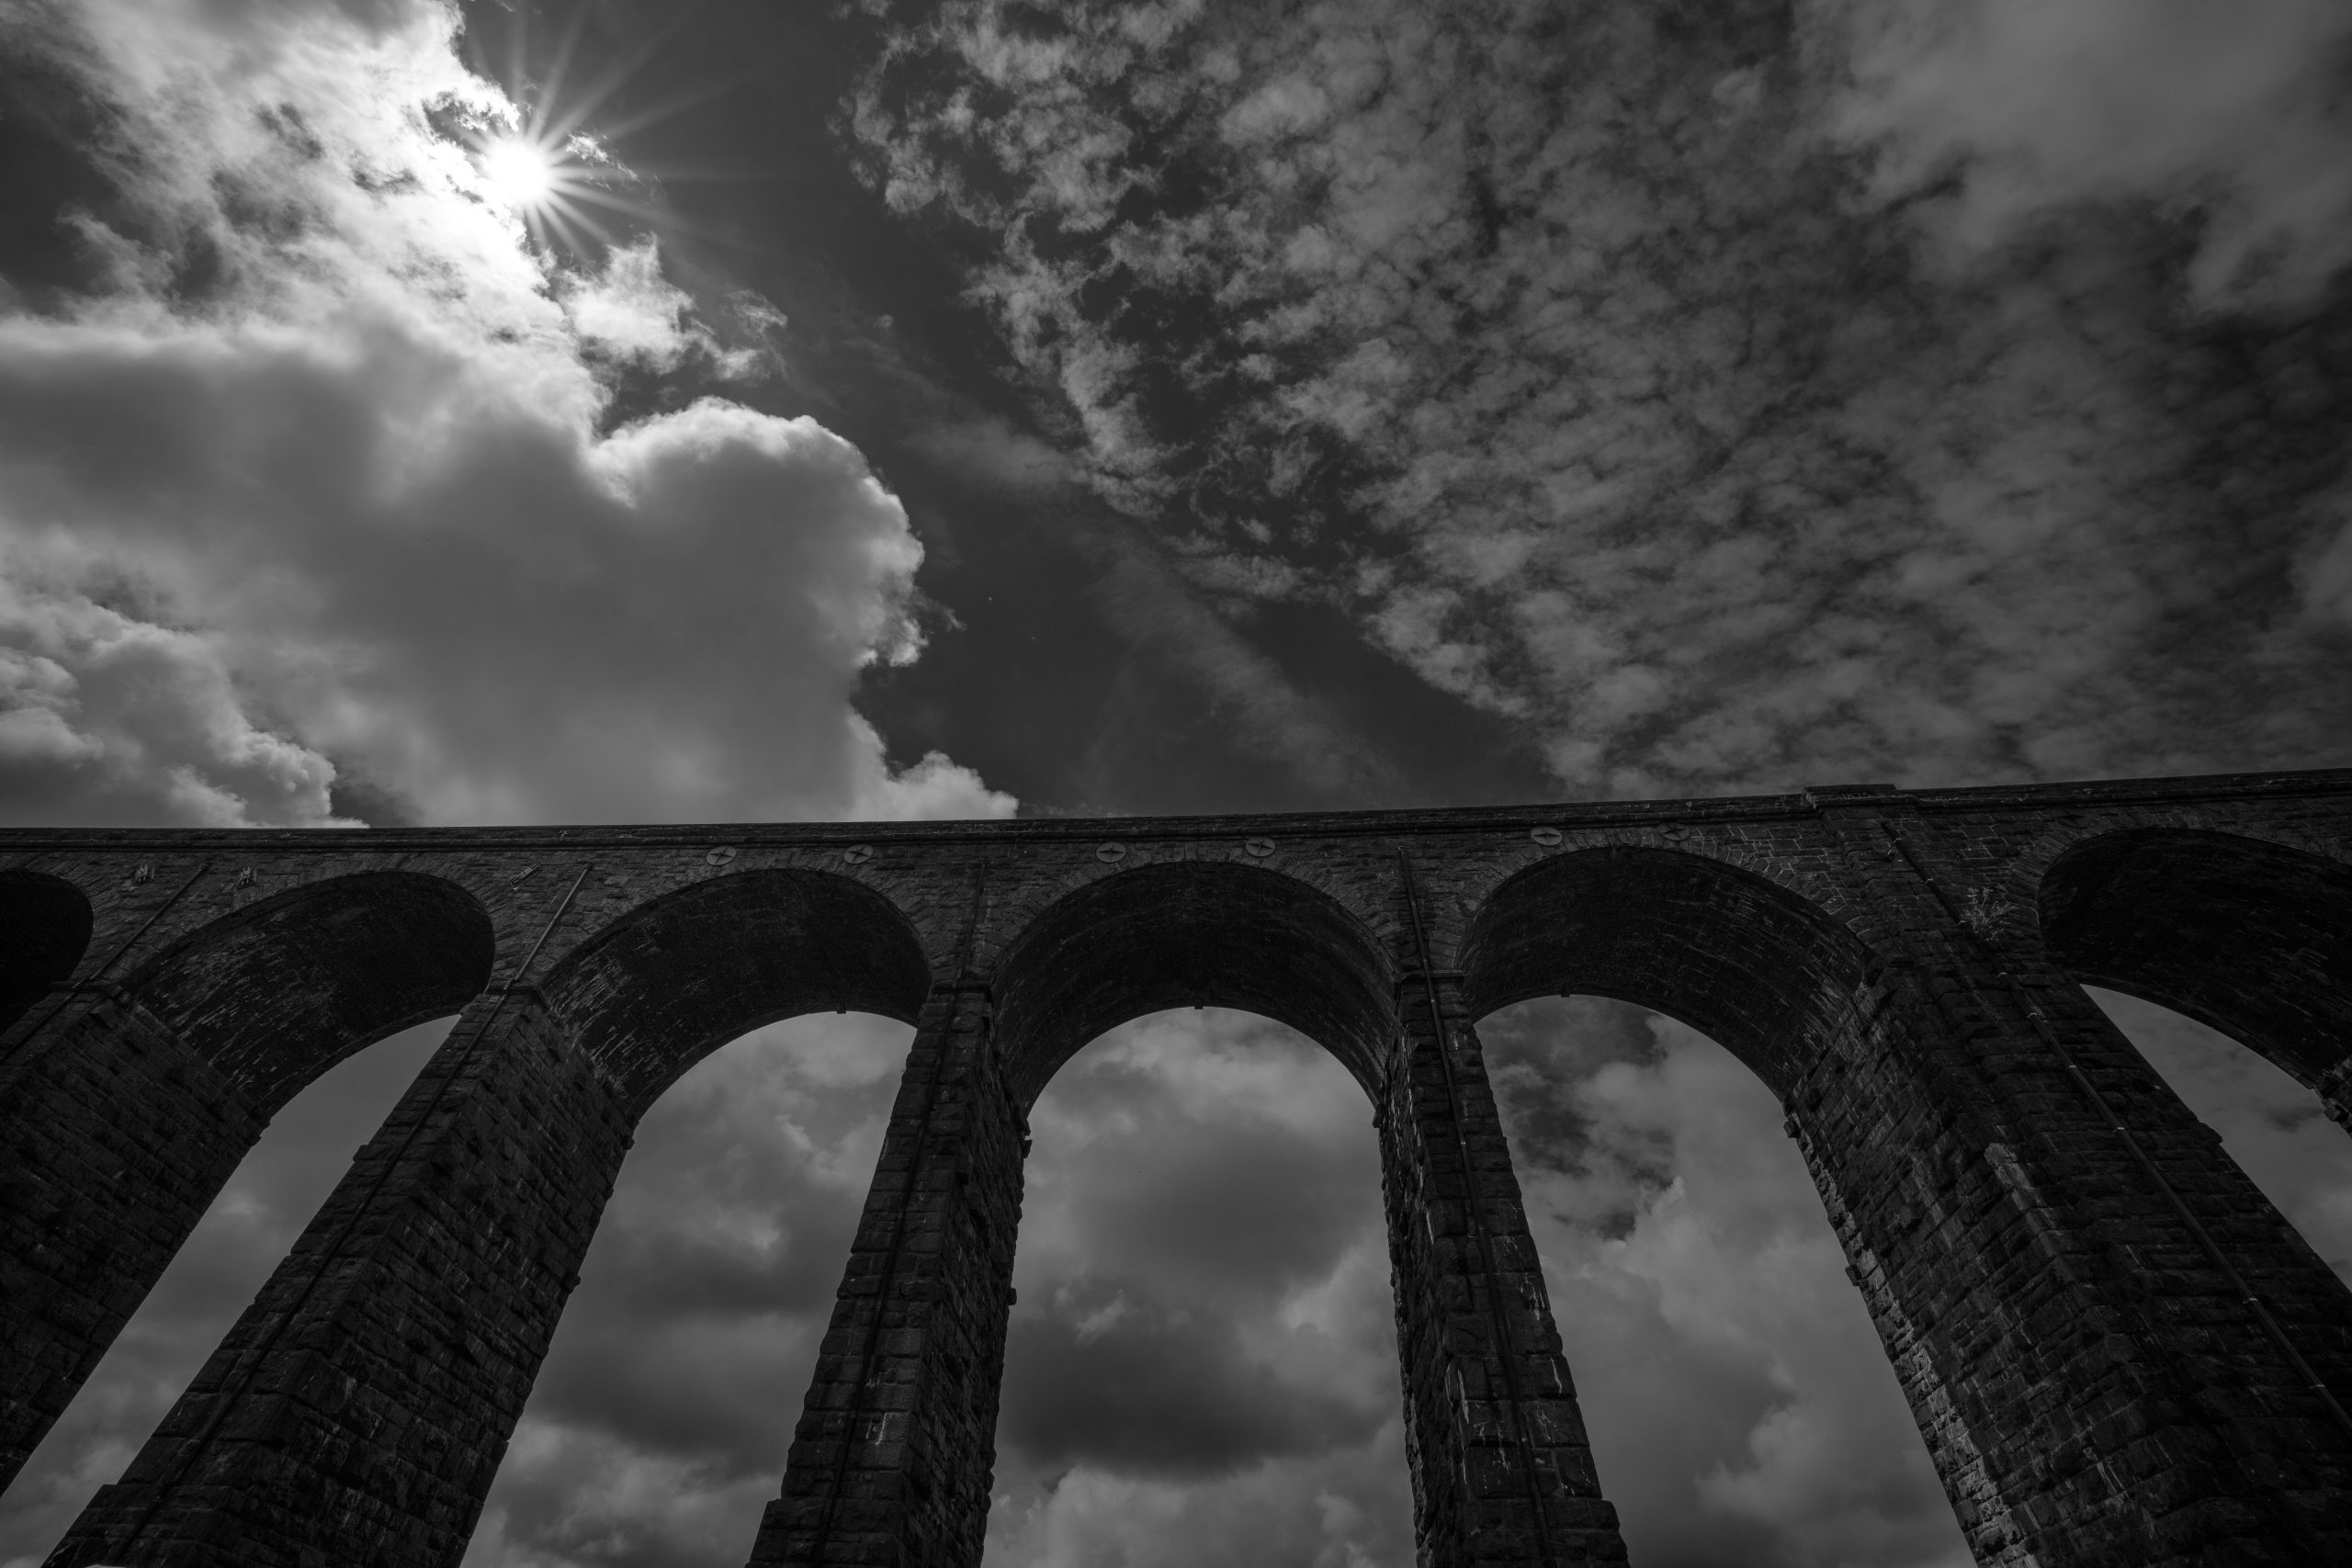 Seen in black and white, the huge arches of the Ribblehead Viaduct tower above and the sun is making a starburst pattern, during this Yorkshire Three Peaks Challenge guided walk